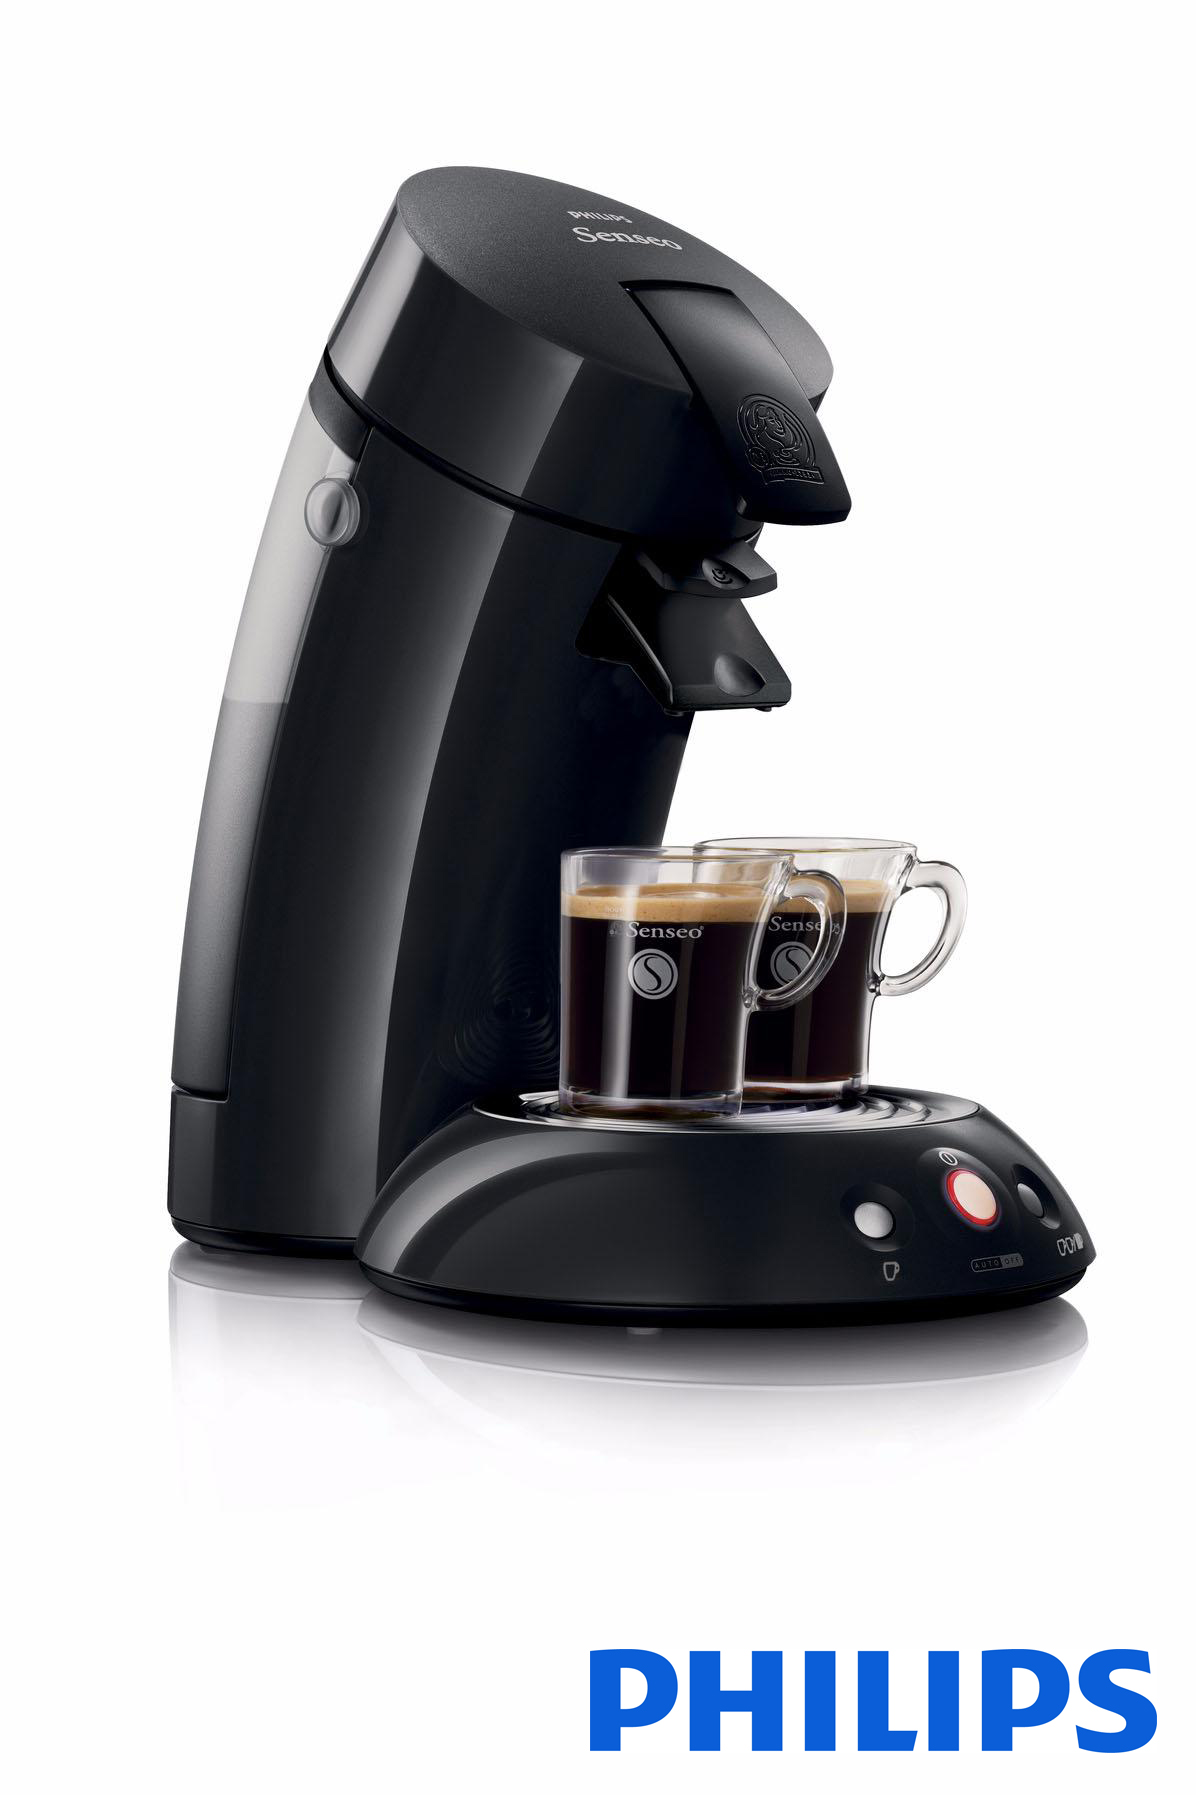 PHILIPS SENSEO COFFEE POD SYSTEM HD7814/60 BLACK